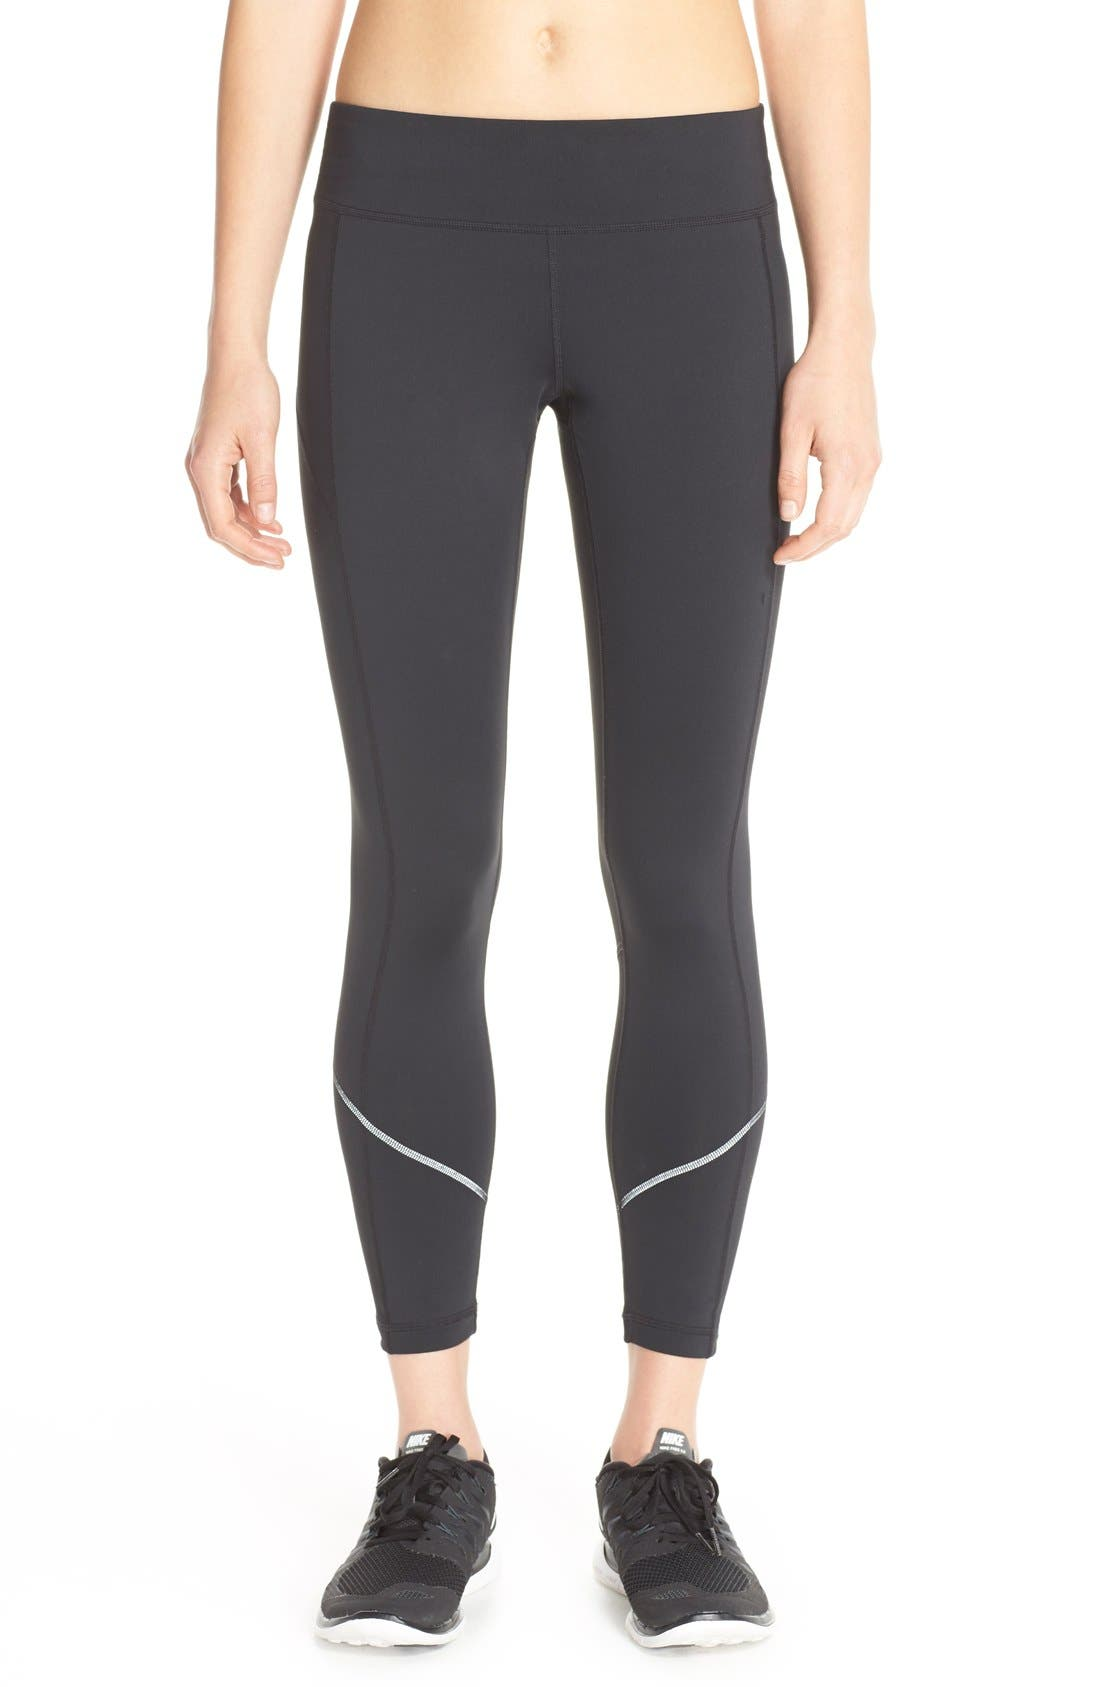 Alternate Image 1 Selected - Zella 'Fly By' Running Midi Tights